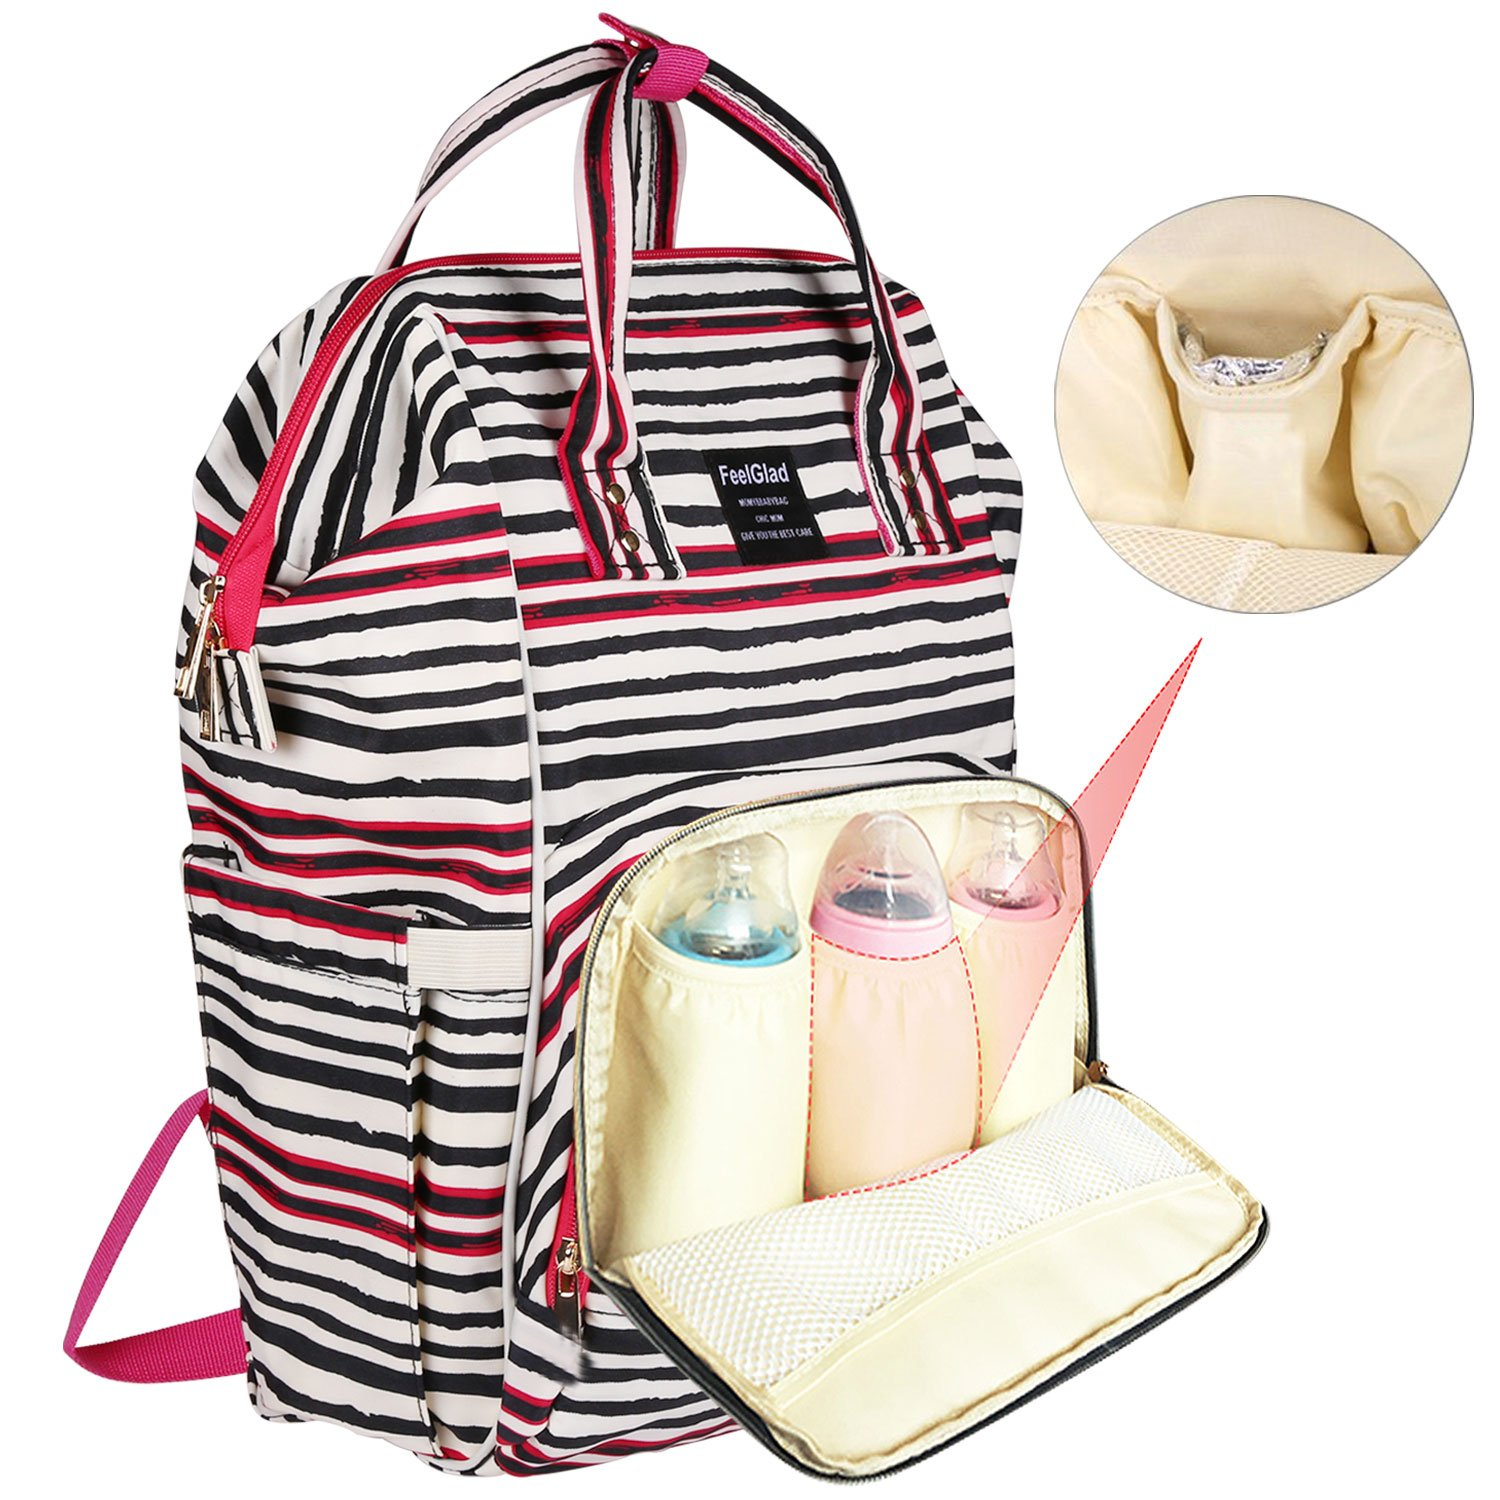 Diaper Bag for Baby Care - FeelGlad Multi-Function Waterproof Mommy Bag with Insulated Pockets - include Nappy Changing Handbag and Stroller Straps - Large Capacity for Travel Work or Outing